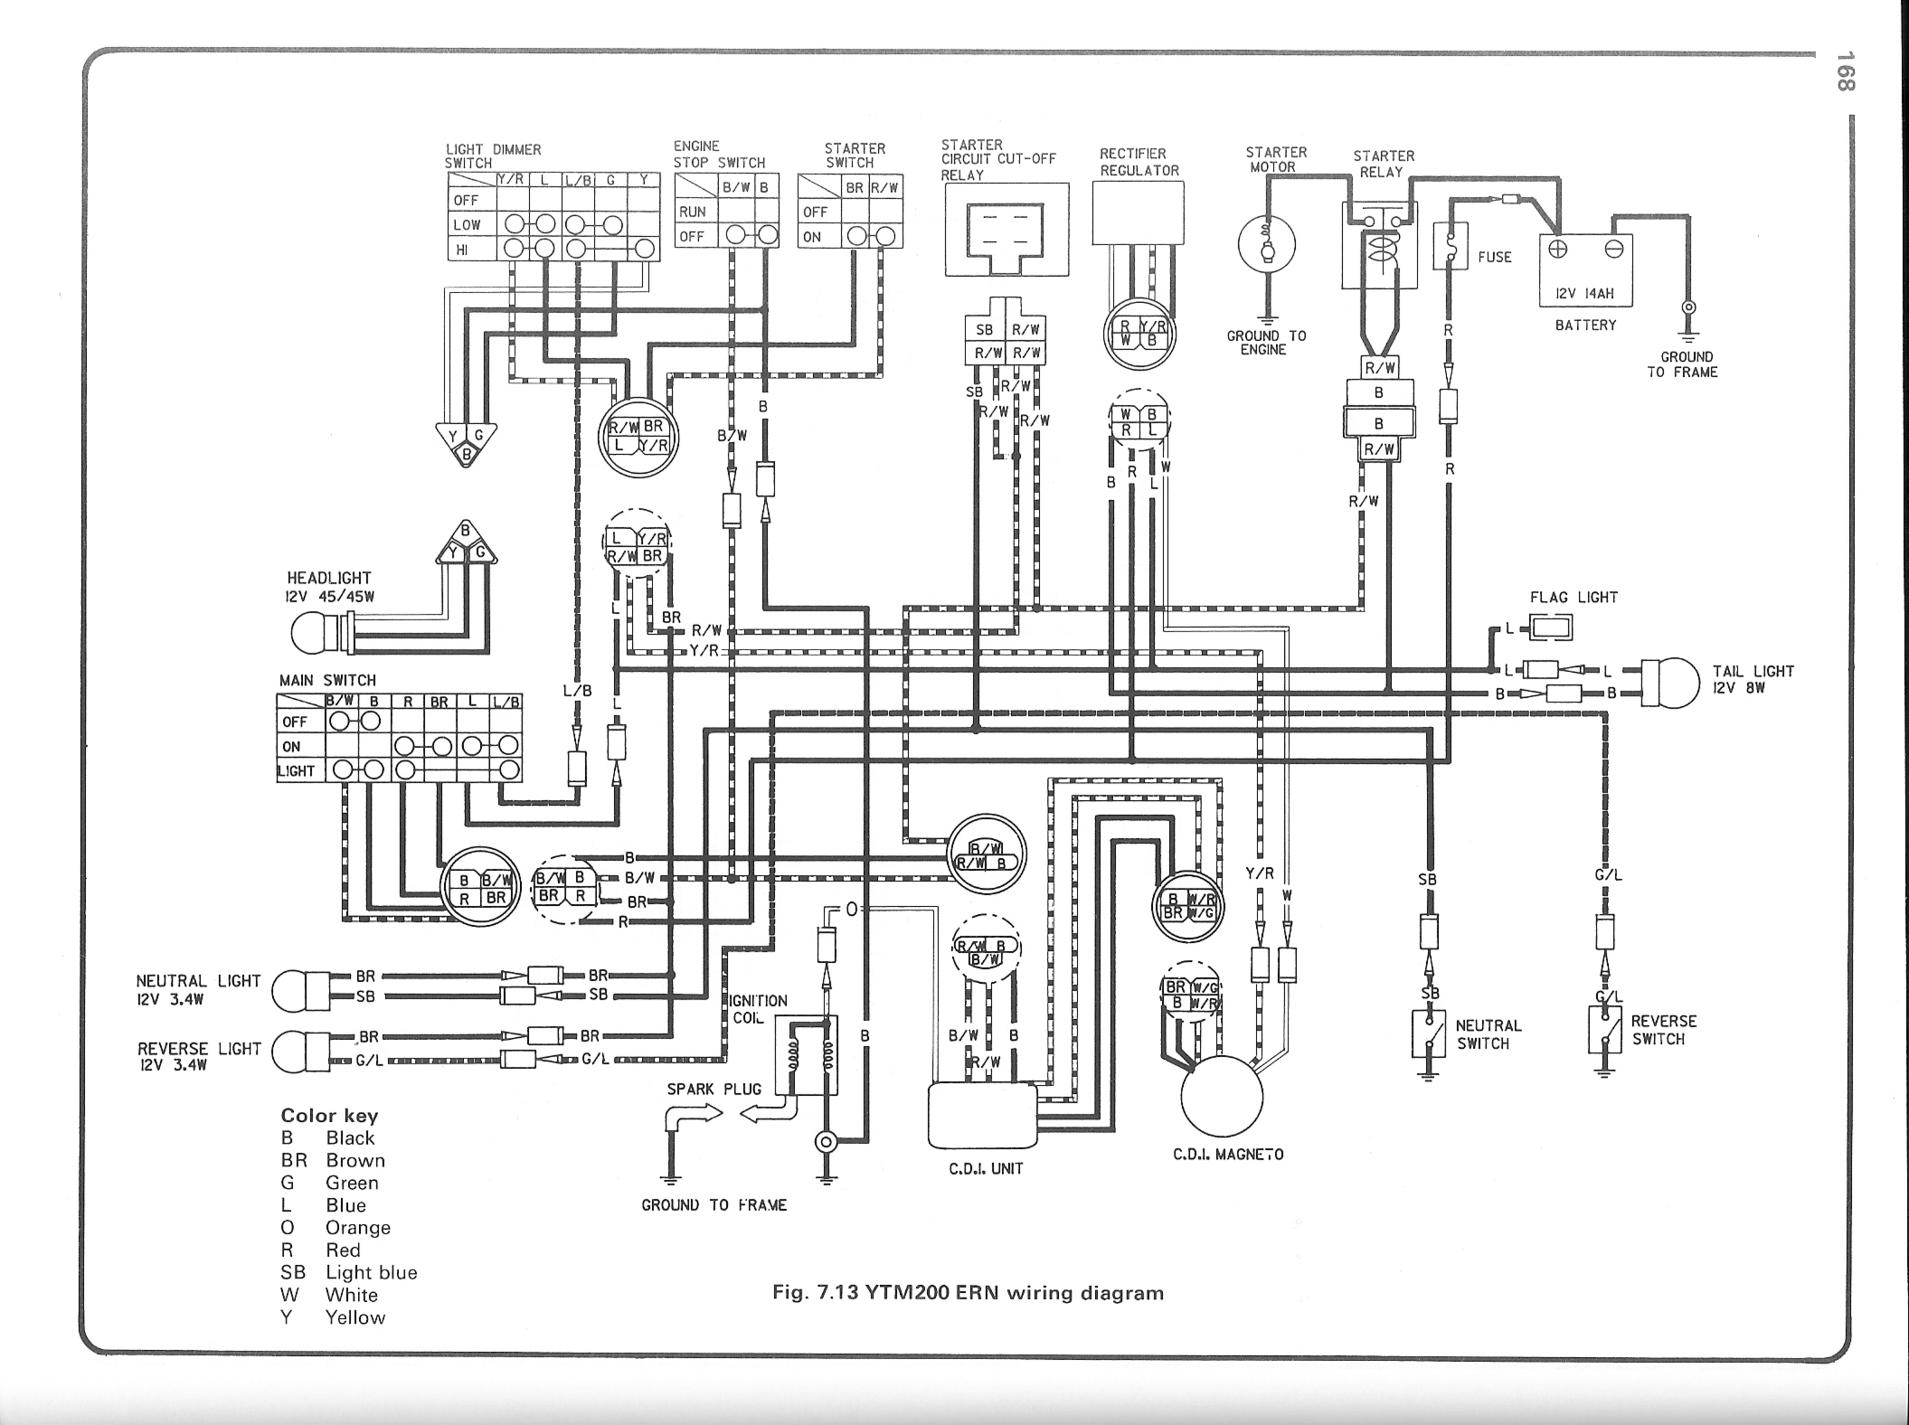 3WHeeLeR WoRLD - Yamaha YTM200ERN Three-wheeler wiring diagram 5 pin cdi wiring diagram 3WHeeLeR WoRLD